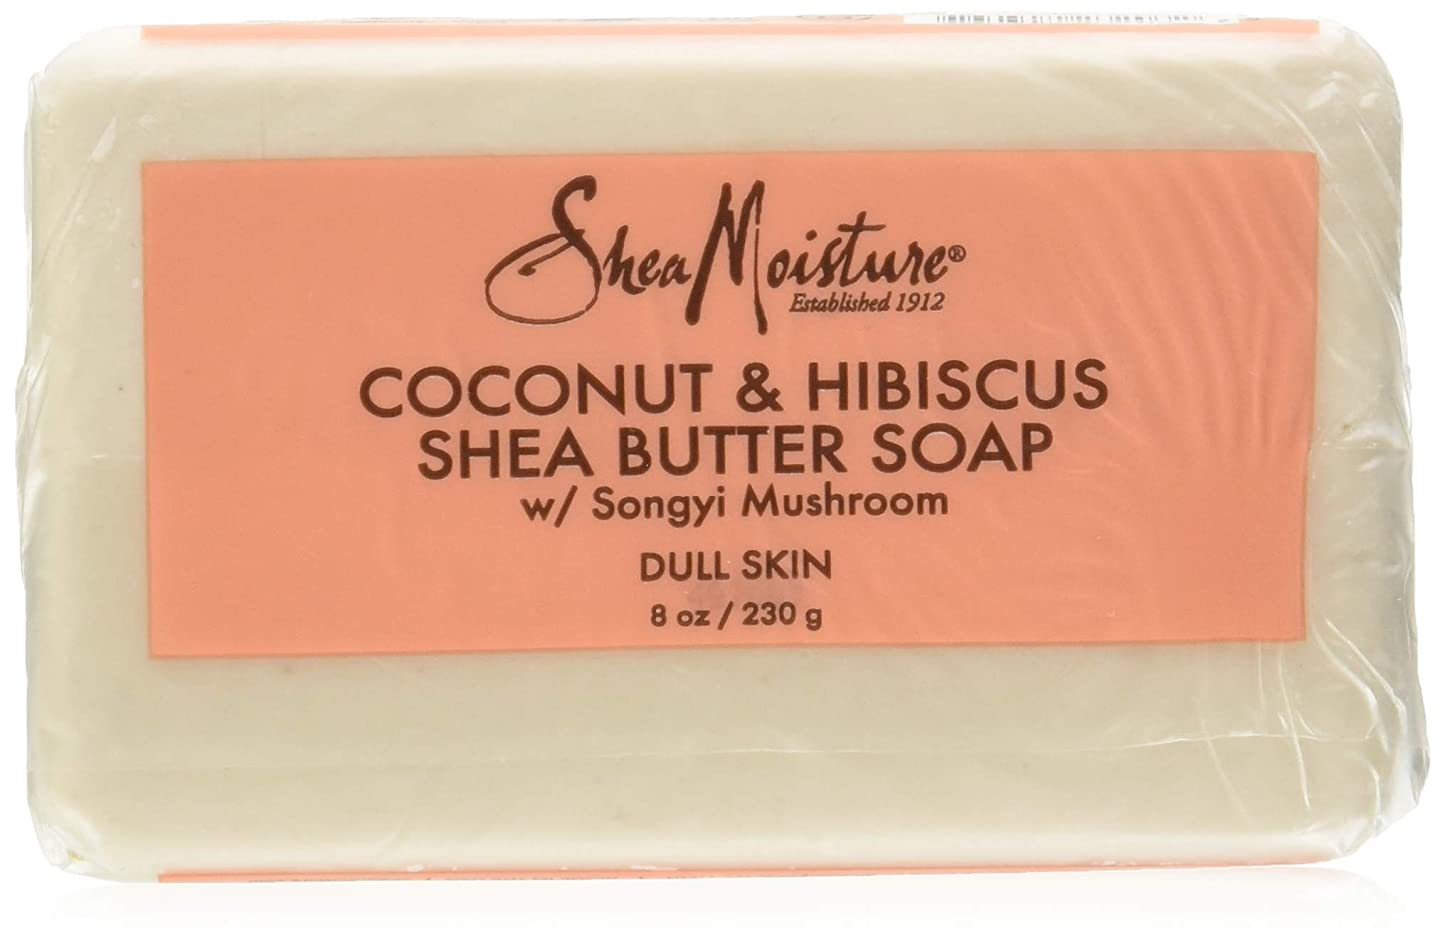 戦う解釈する顔料Shea Moisture Coconut Hibiscus Bar Soap- 235 ml by Shea Moisture